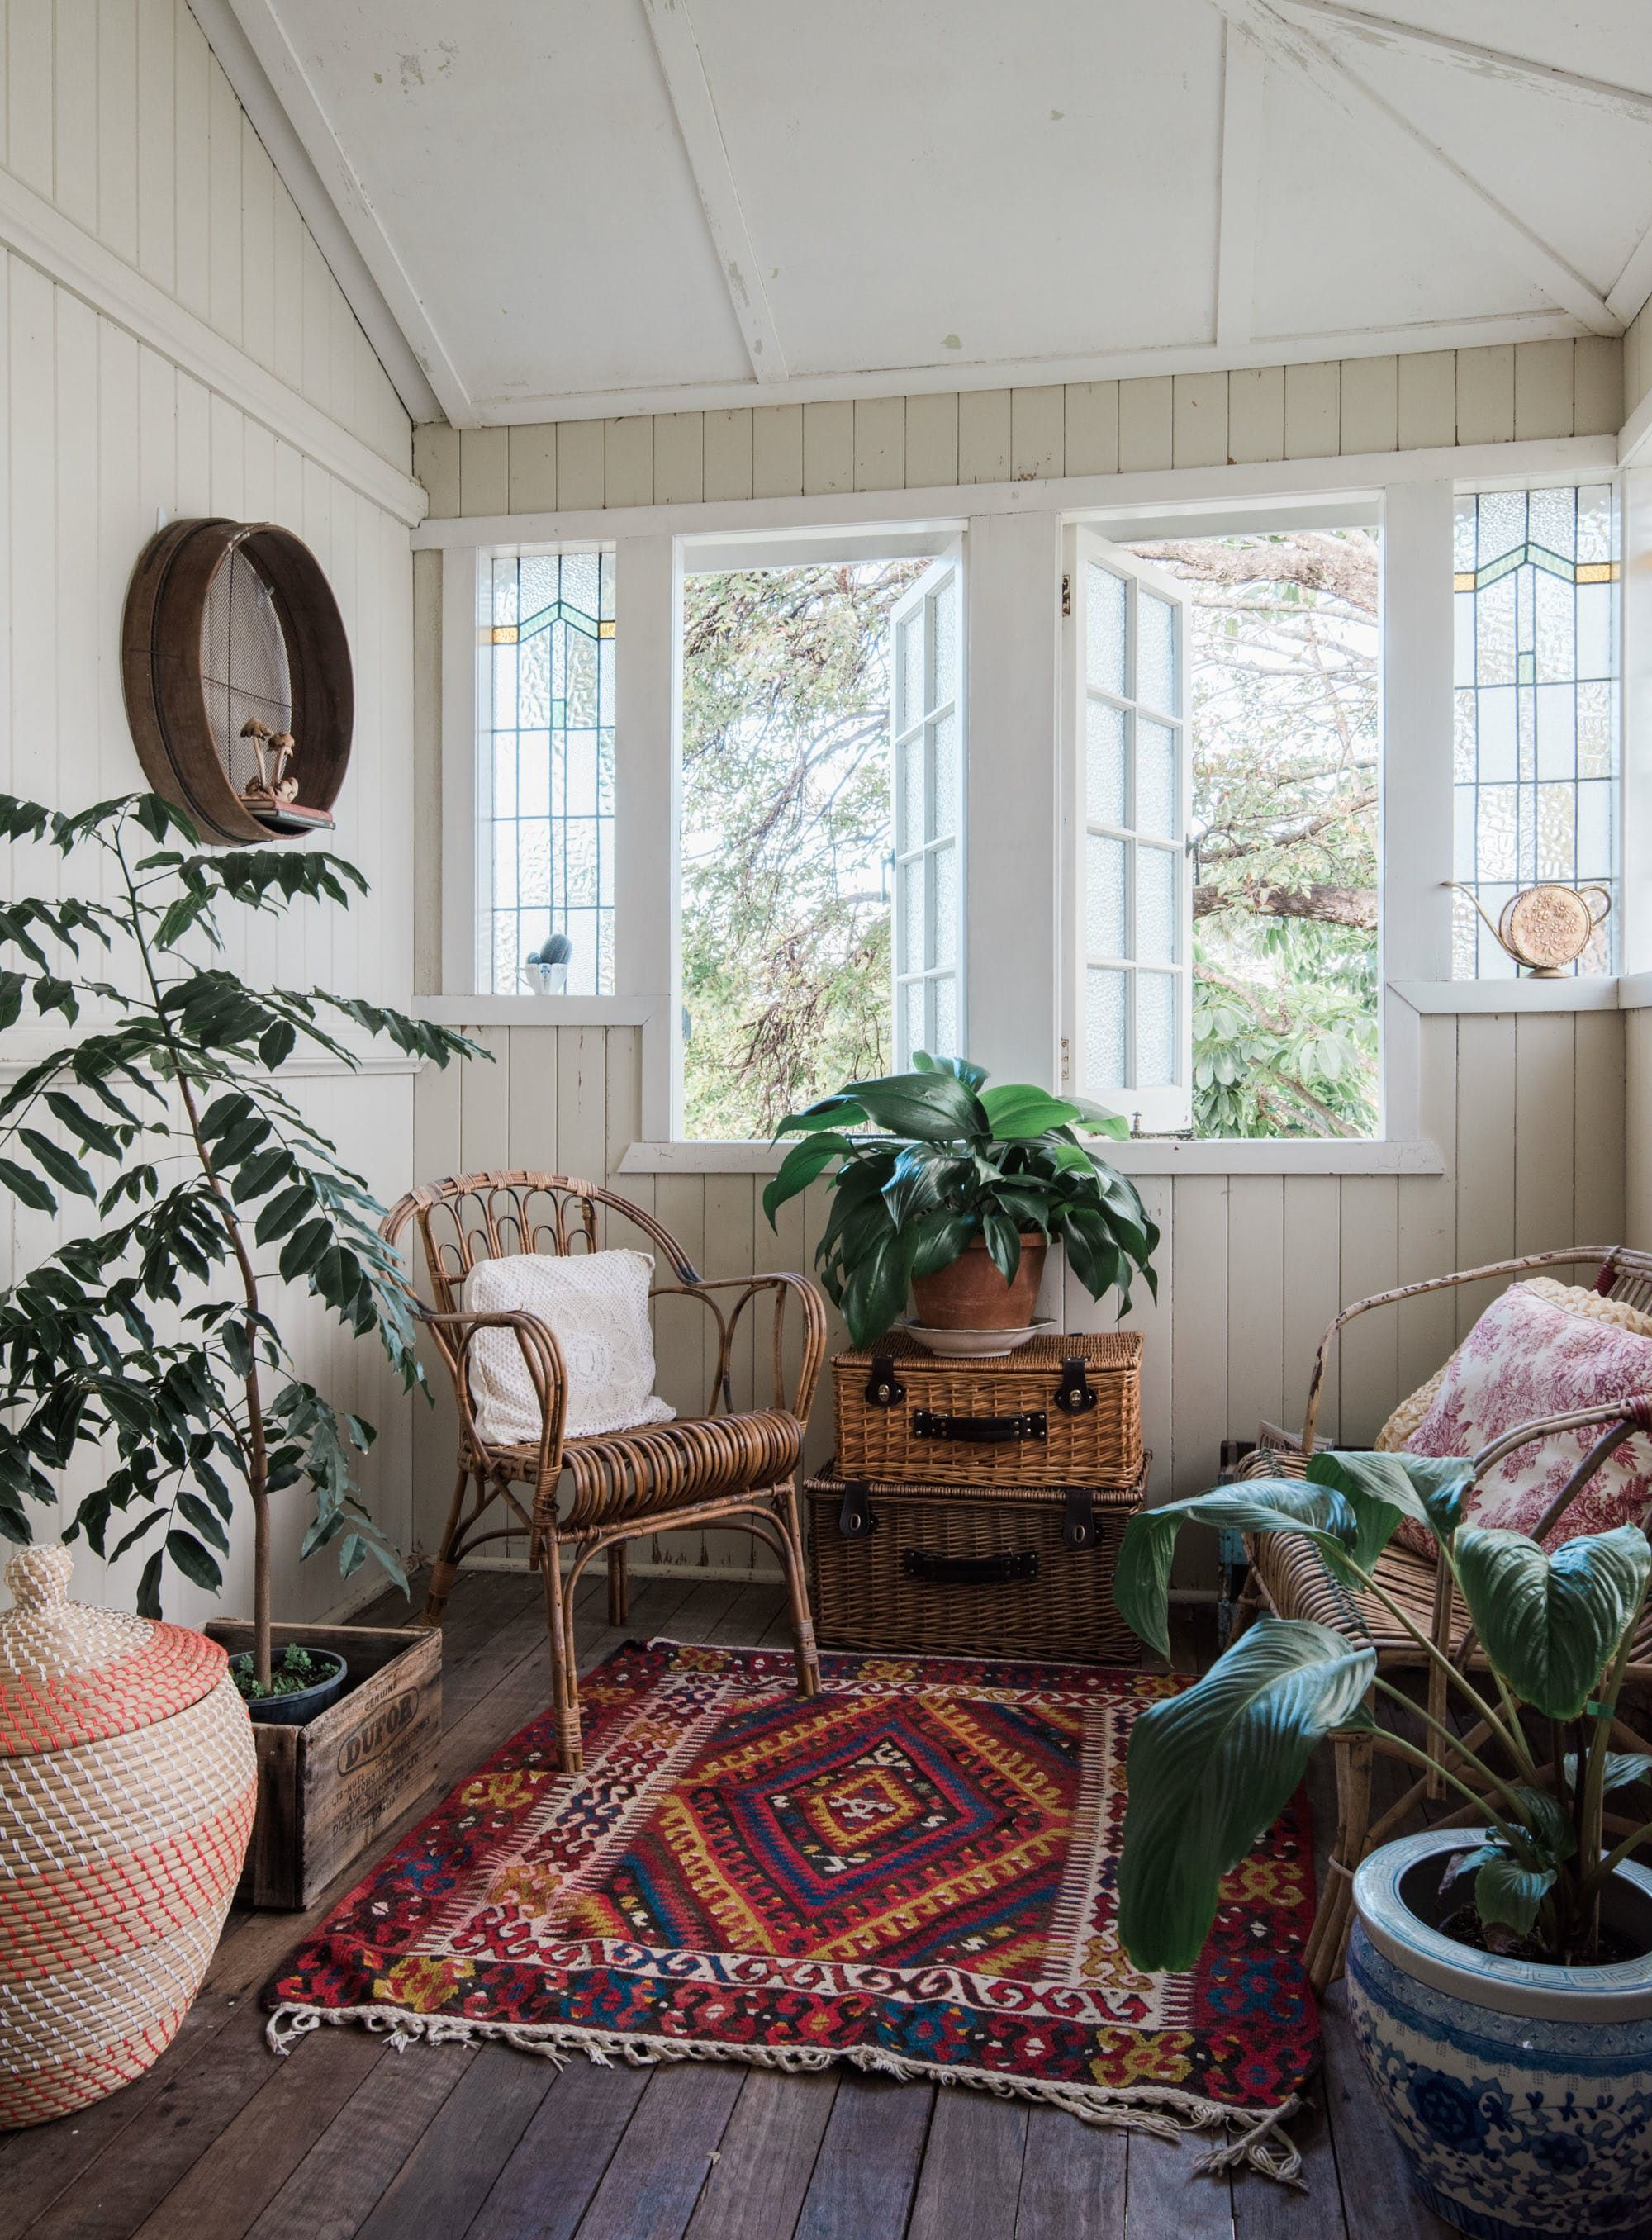 Get The Look A Home Full Of Second Hand Treasures With Images